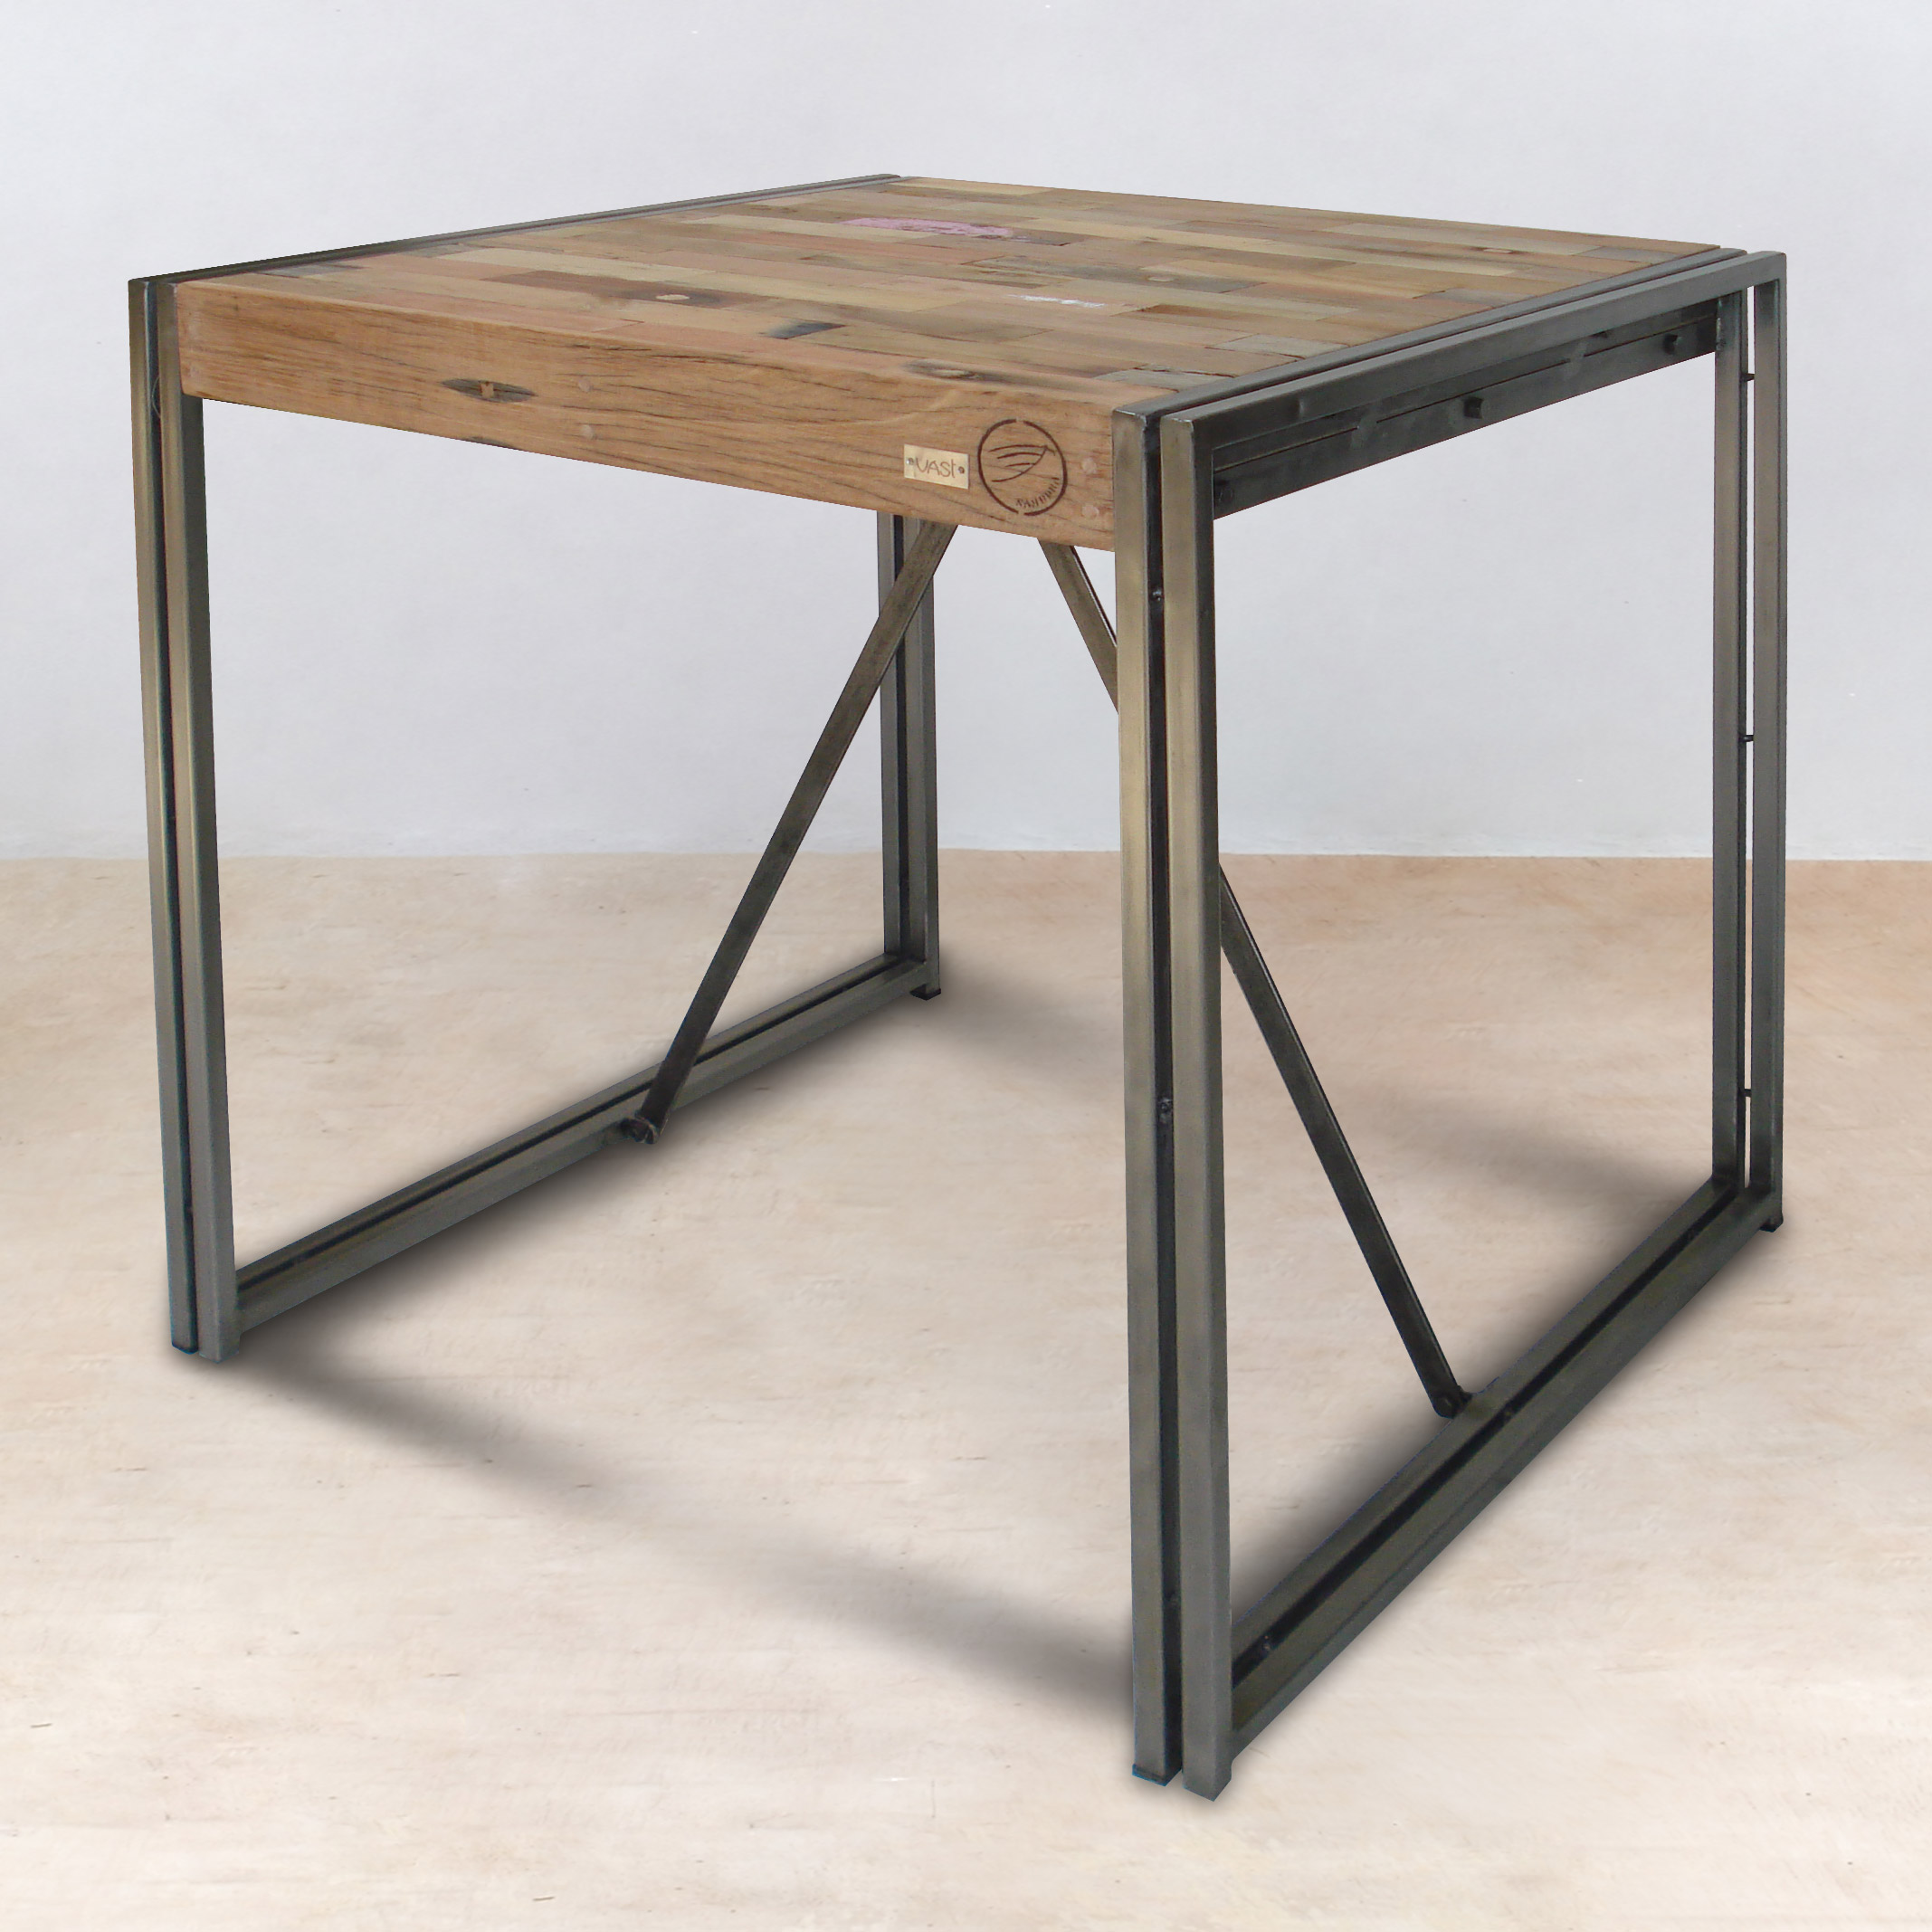 table mange debout 100cm en bois recycl s industryal. Black Bedroom Furniture Sets. Home Design Ideas